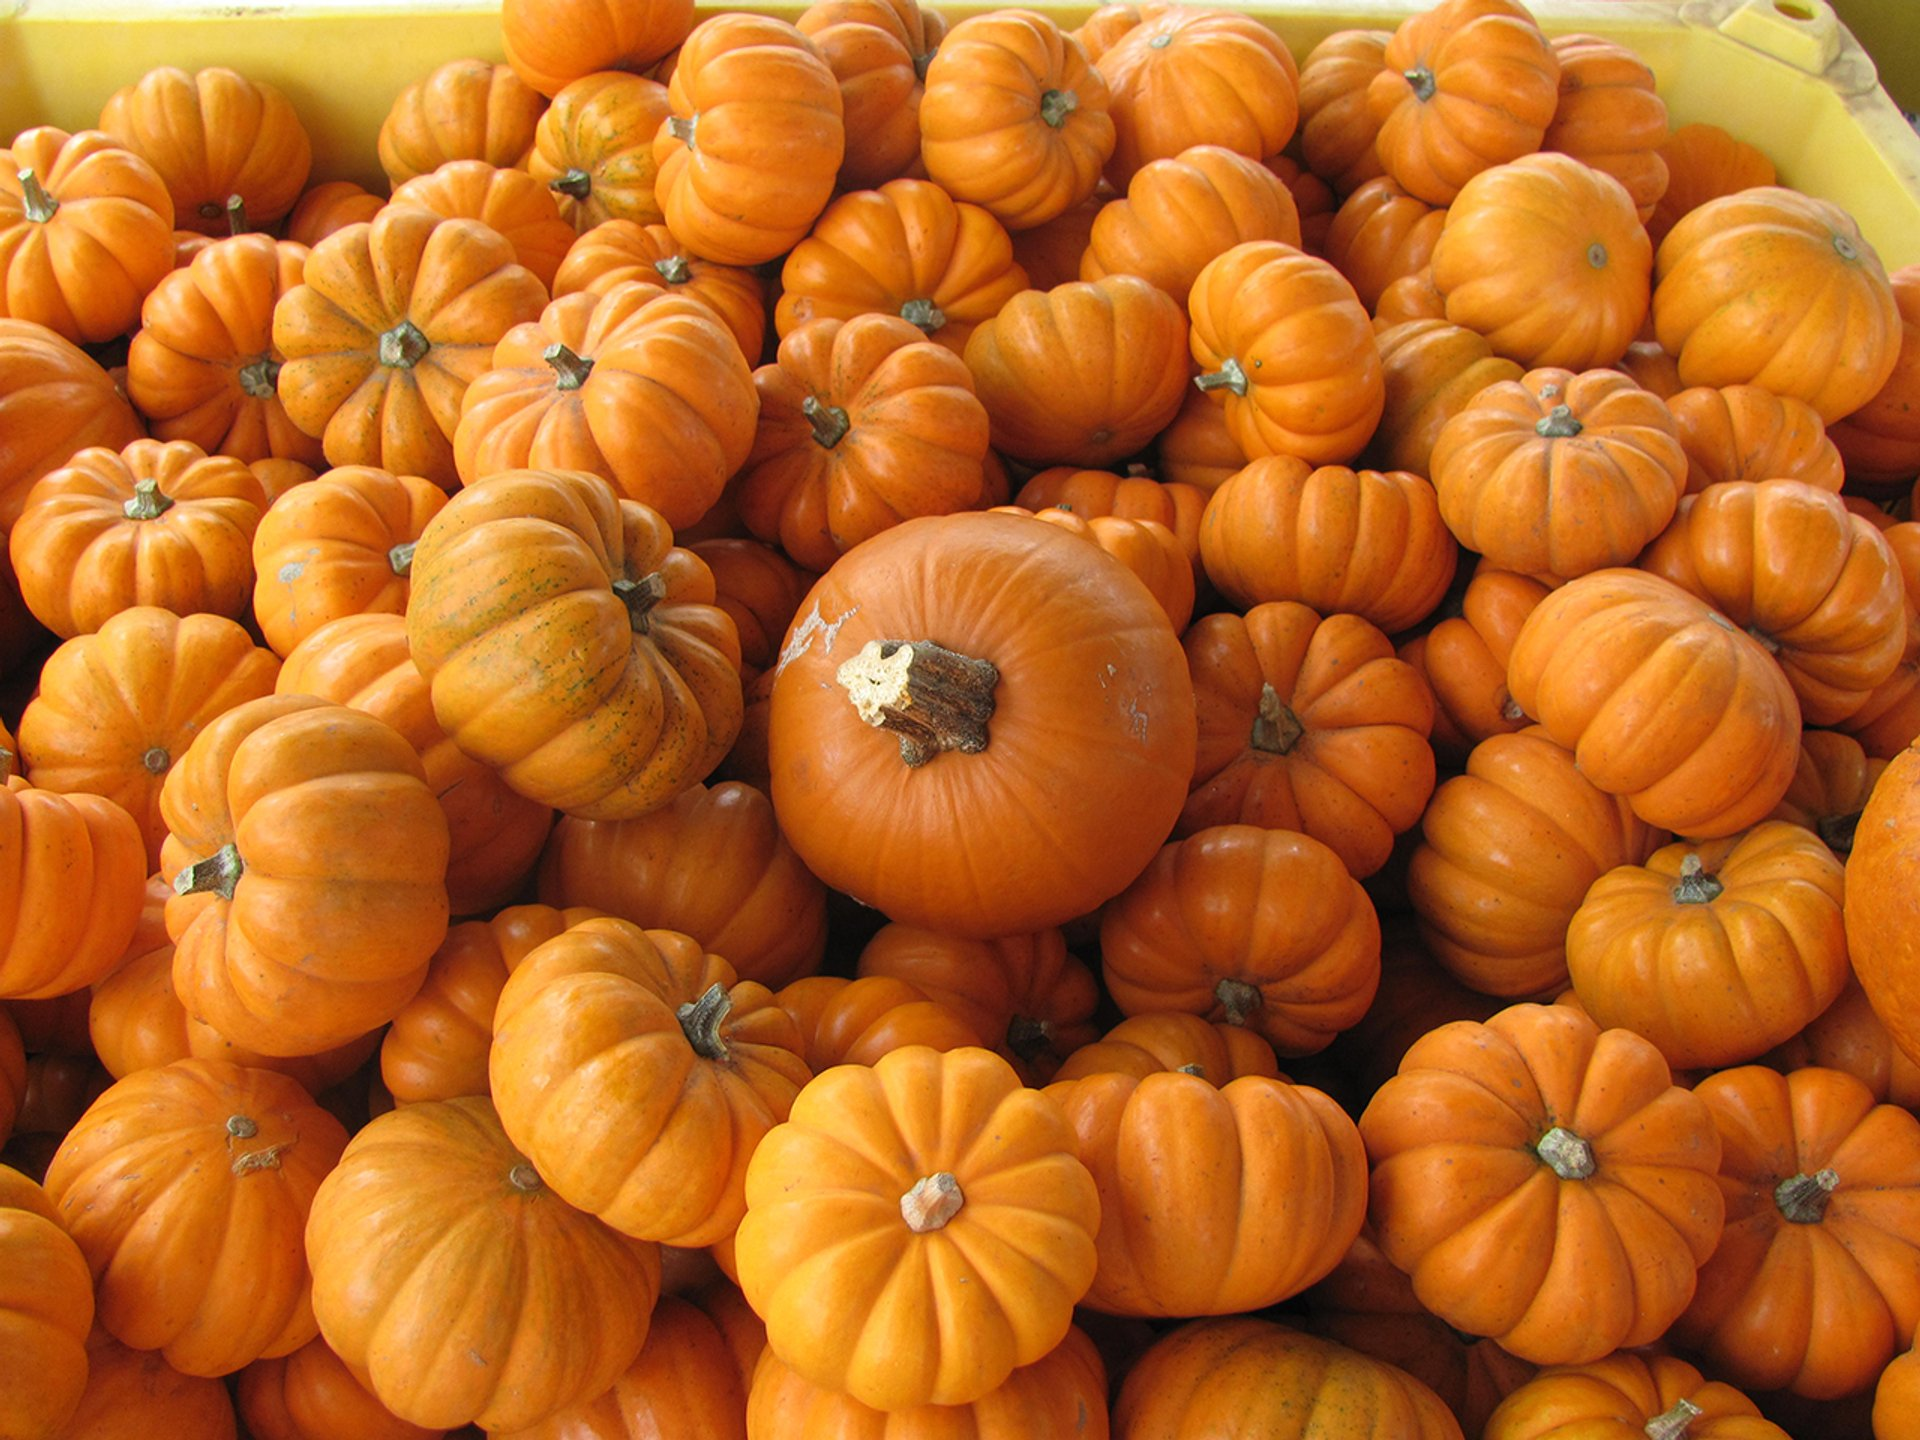 Bates Nut Farm Pumpkin Patch, Valley Center, California 2020